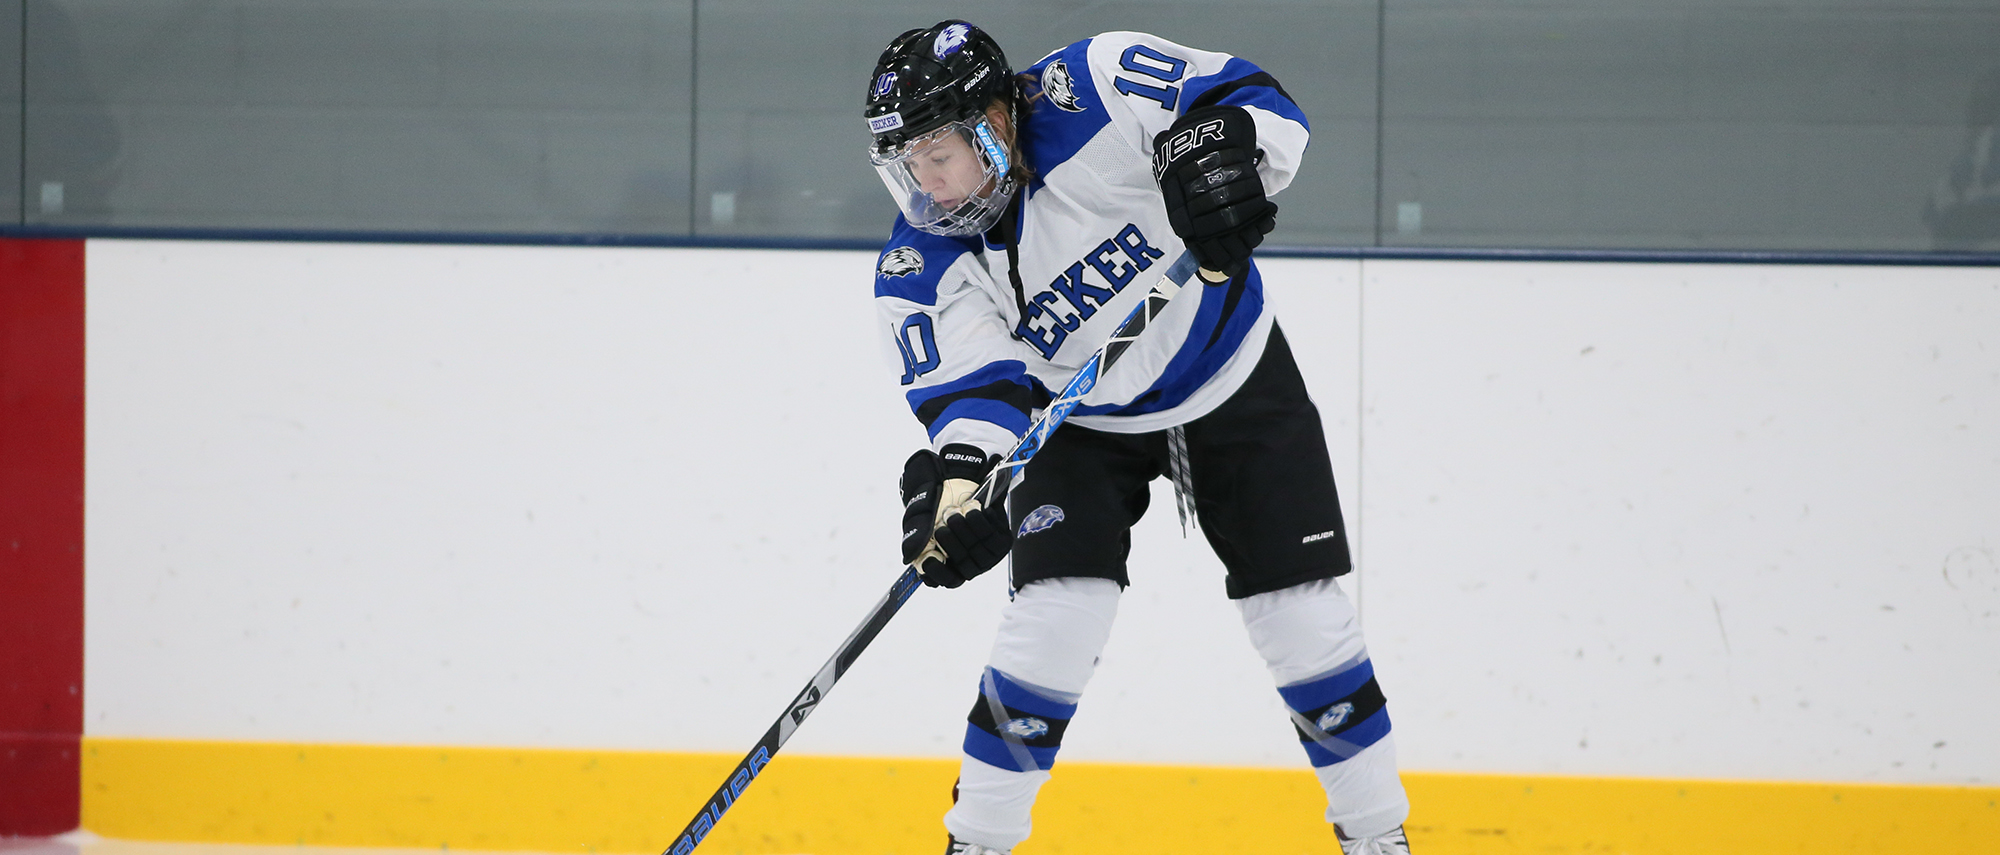 Bailey Coons and the women's ice hockey team skated to a 1-1 tie against Johnson and Wales Sunday afternoon.